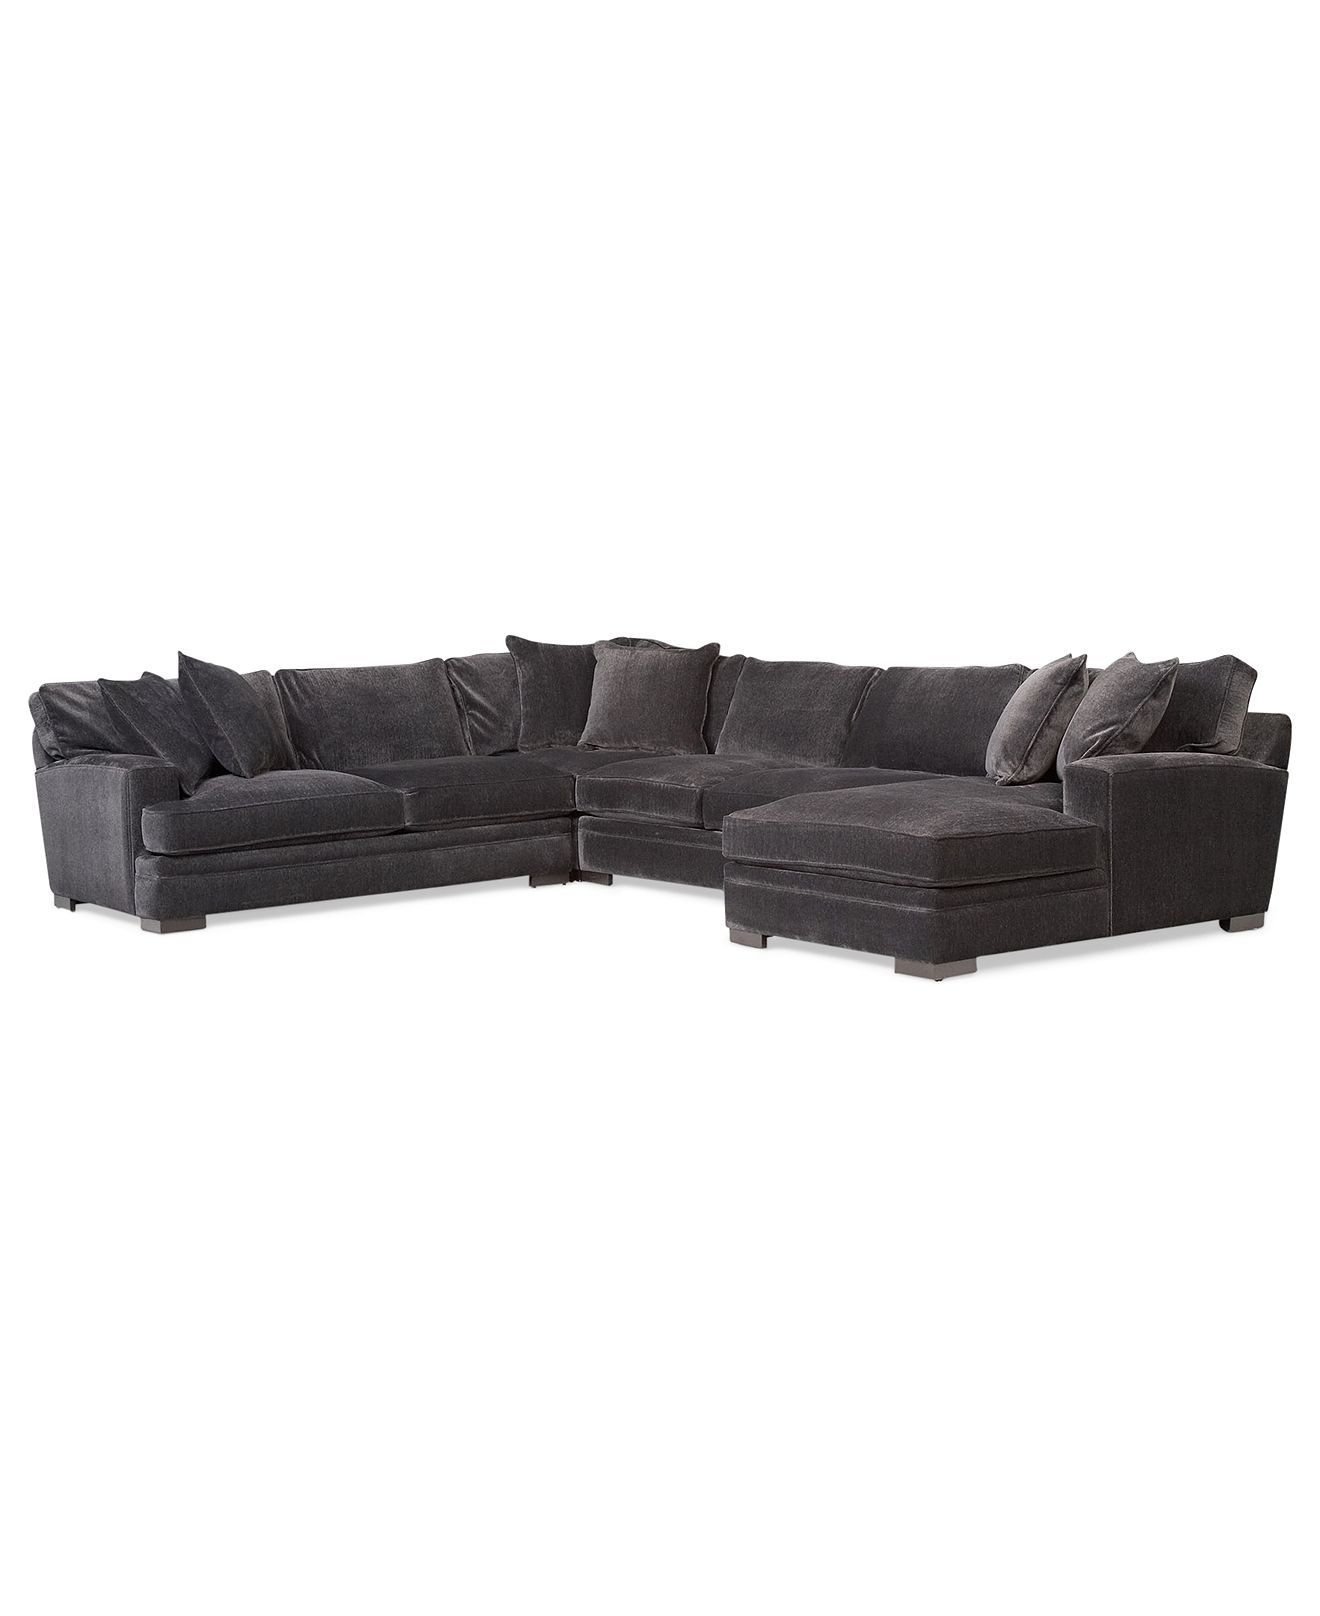 Teddy Fabric 4 Piece Chaise Sectional Sofa Created for Macy s